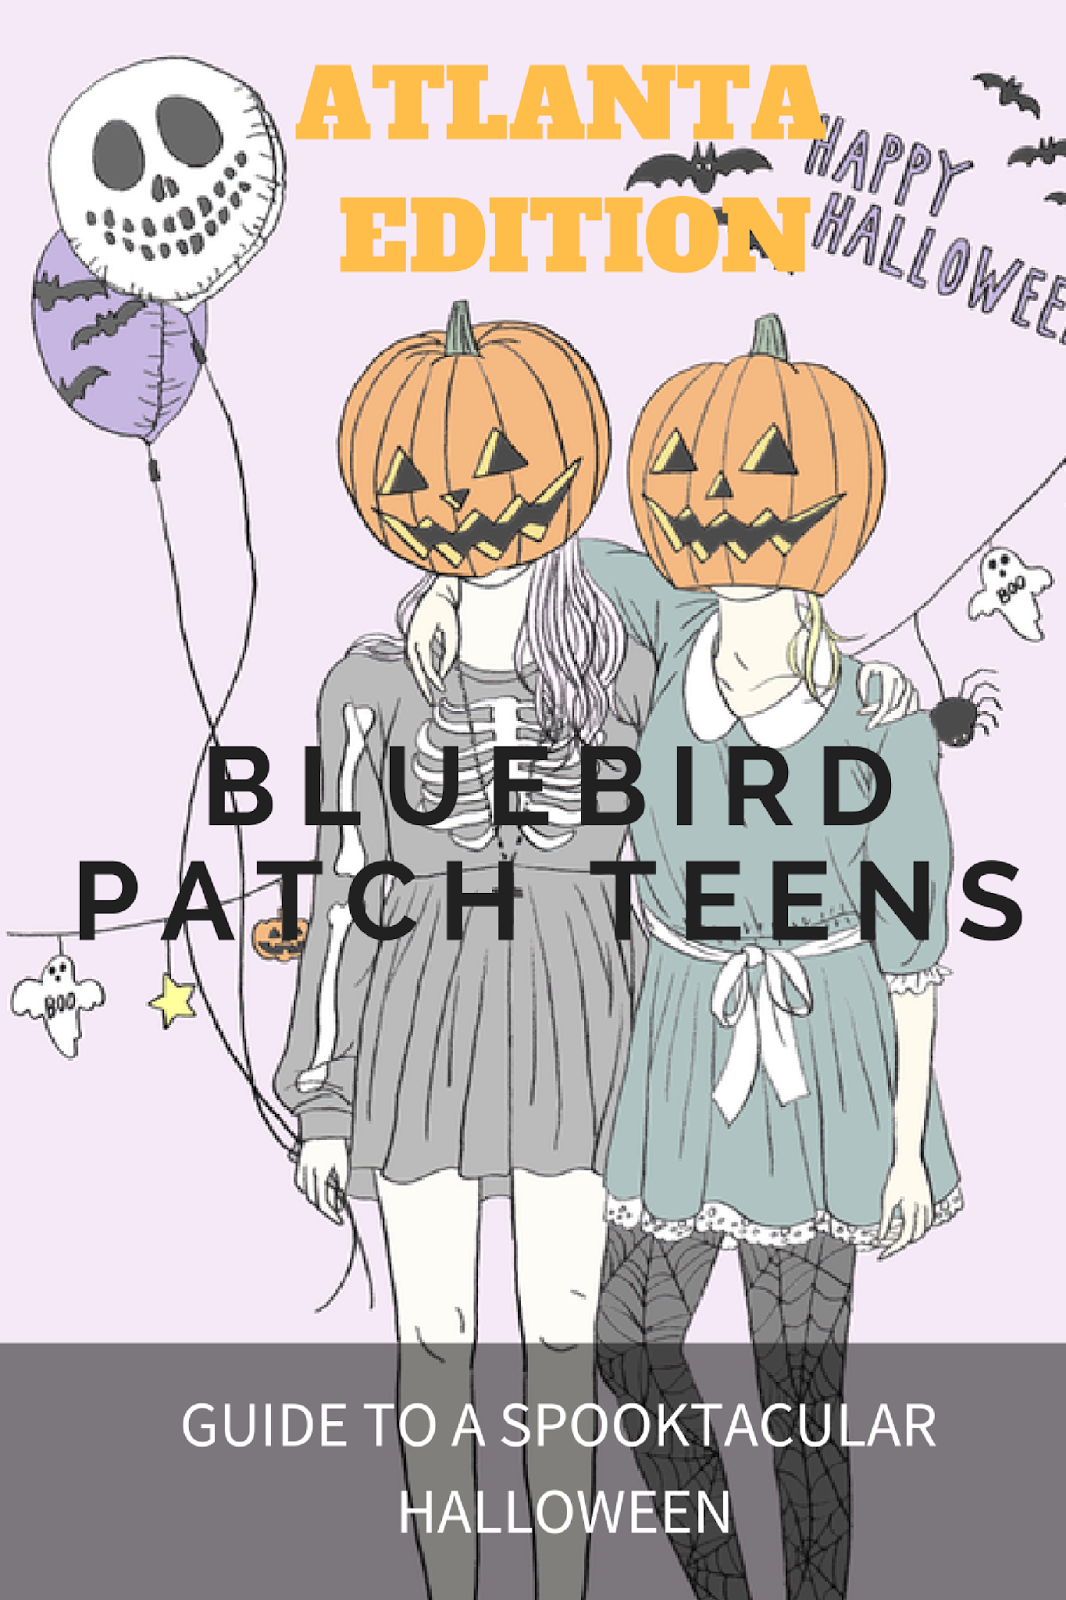 bluebird patch teens spooktacular guide to halloween - atlanta